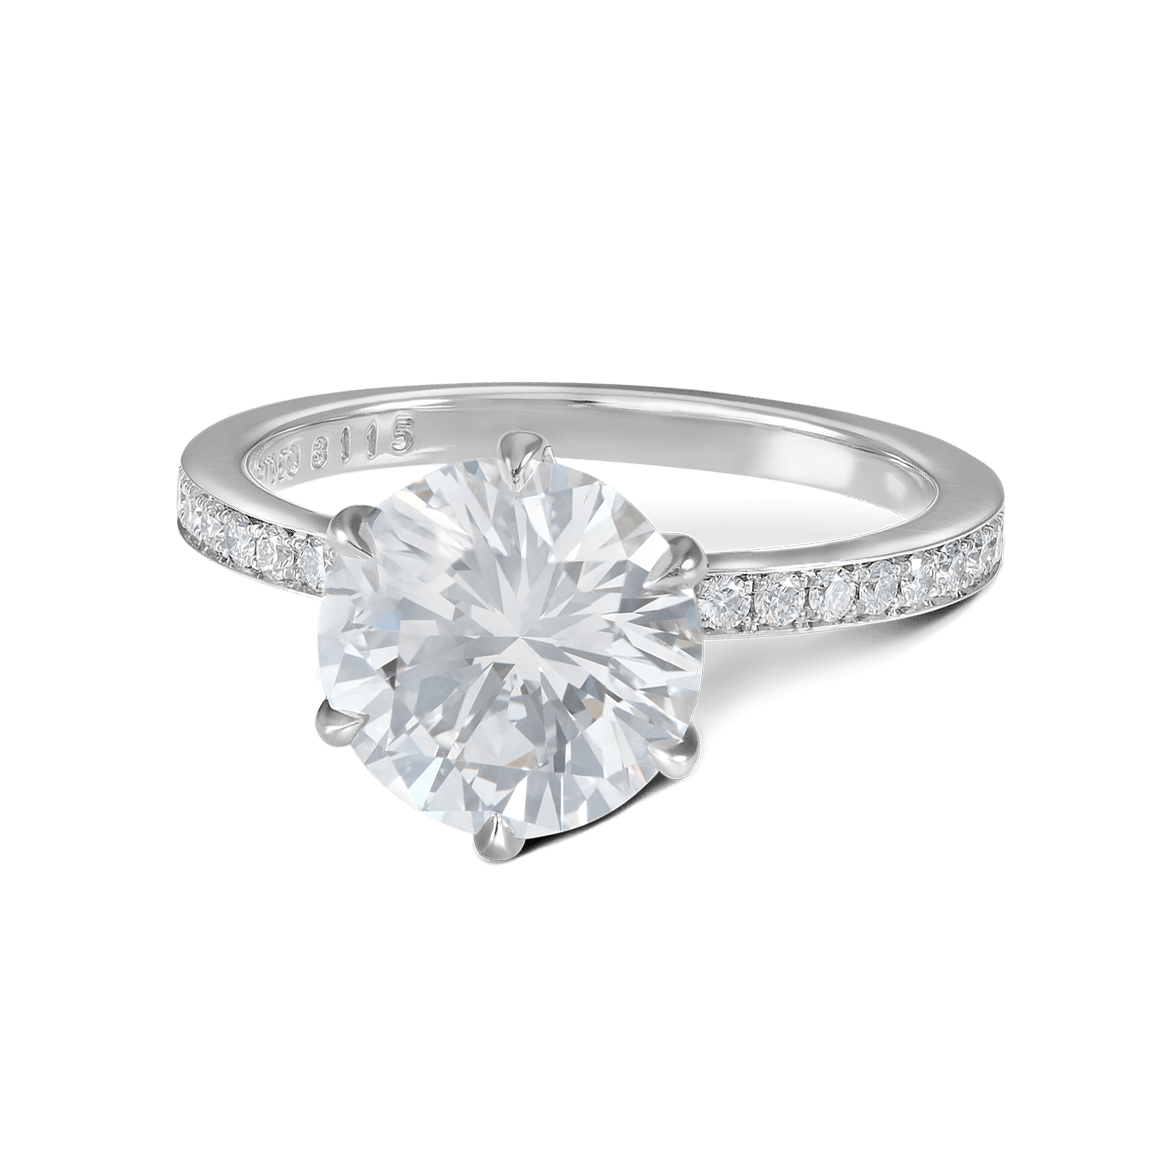 ring-platinum-diamonds-Classic-six-prong-solitaire-steven-kirsch-1.png